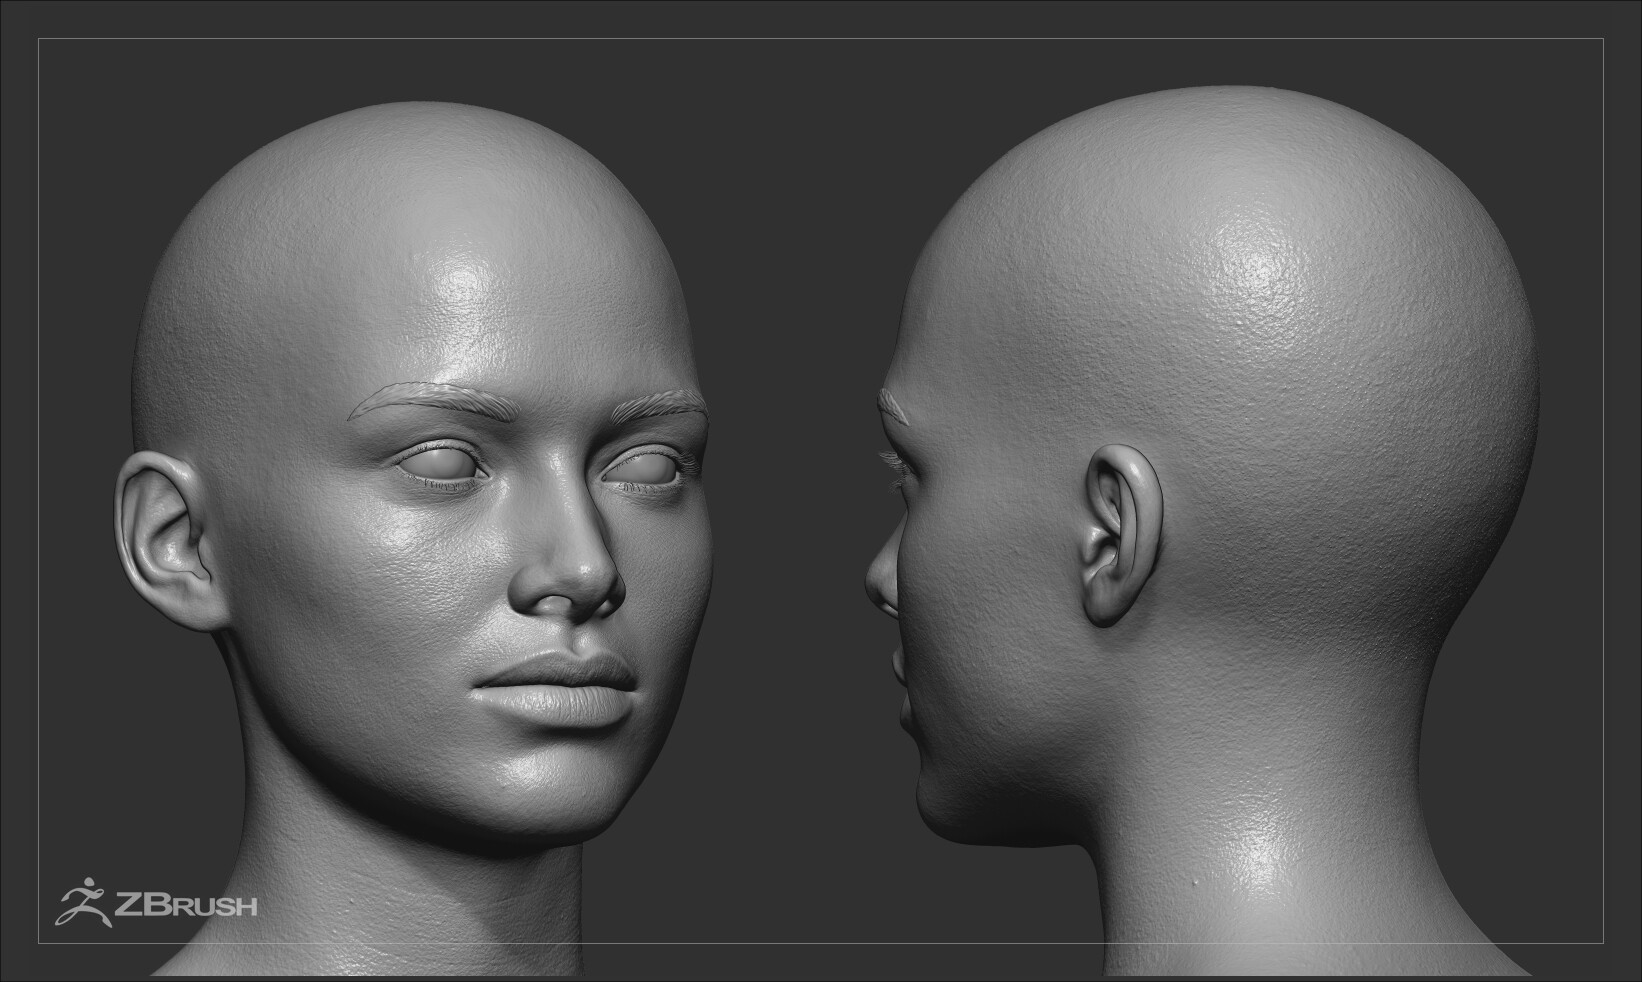 Alex lashko femalehex ana zbrush previews 01